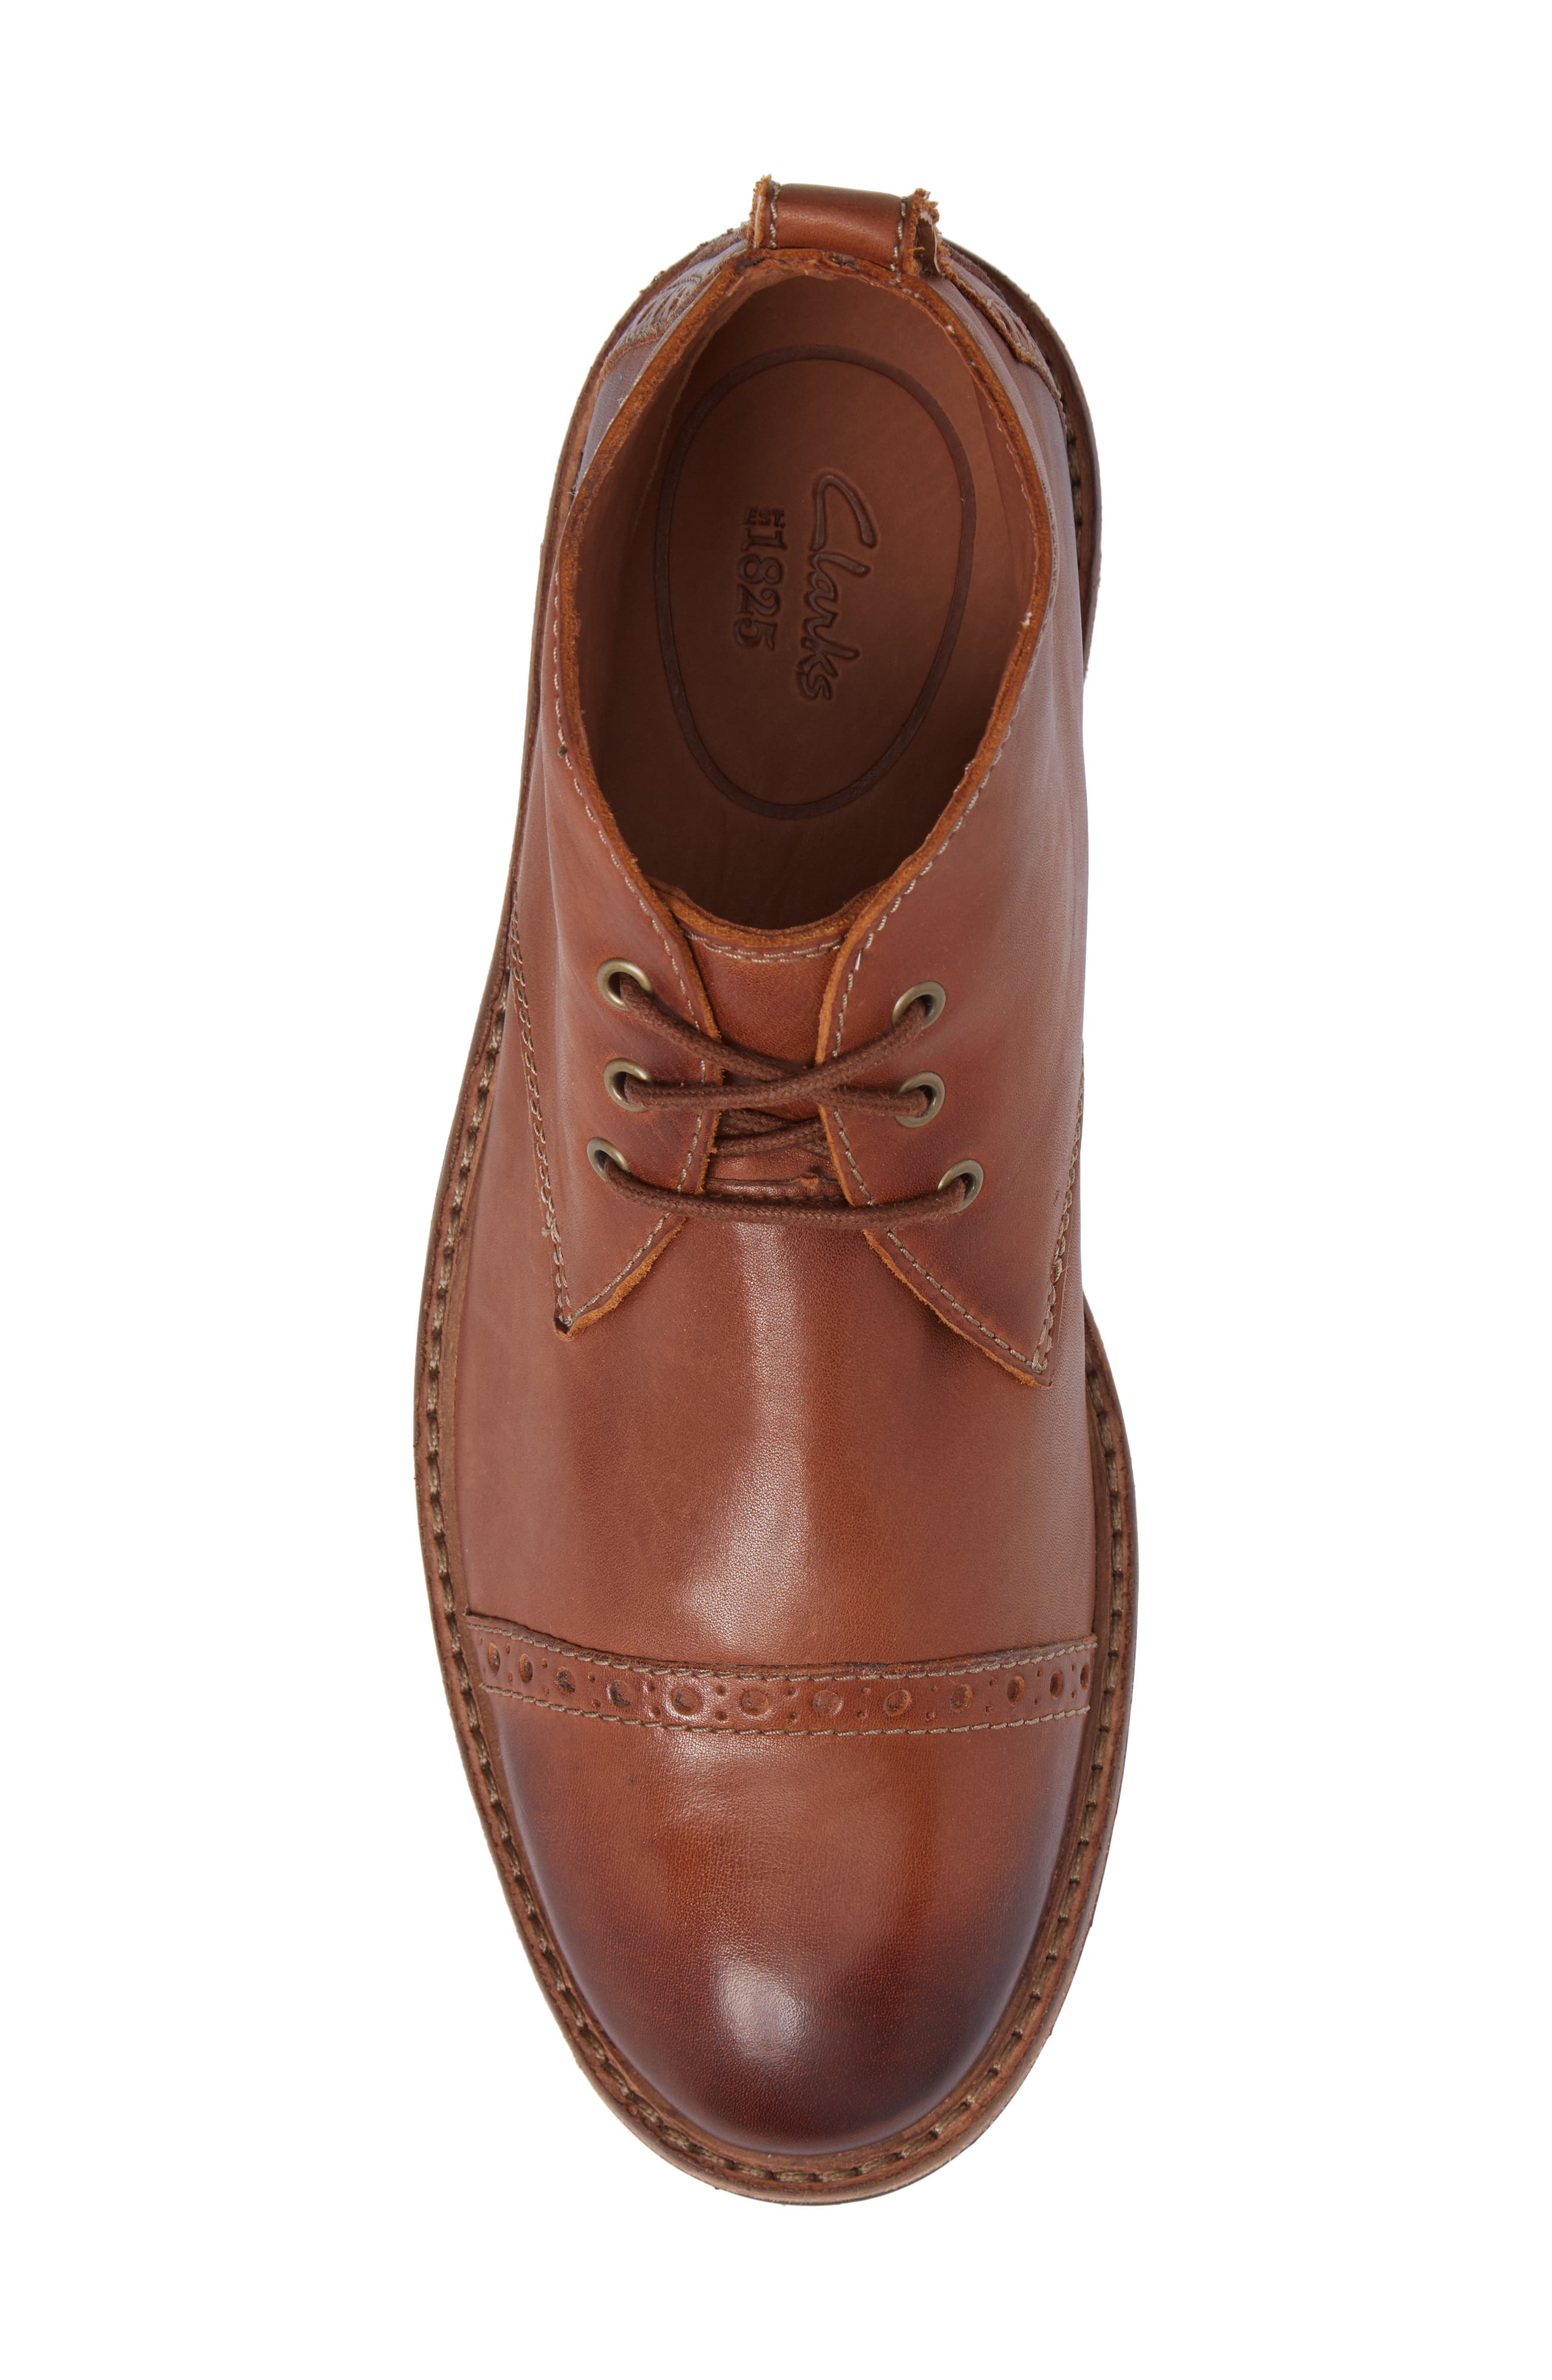 Clarkdale Water Resistant Chukka Boot,                             Alternate thumbnail 5, color,                             Dark Tan Leather